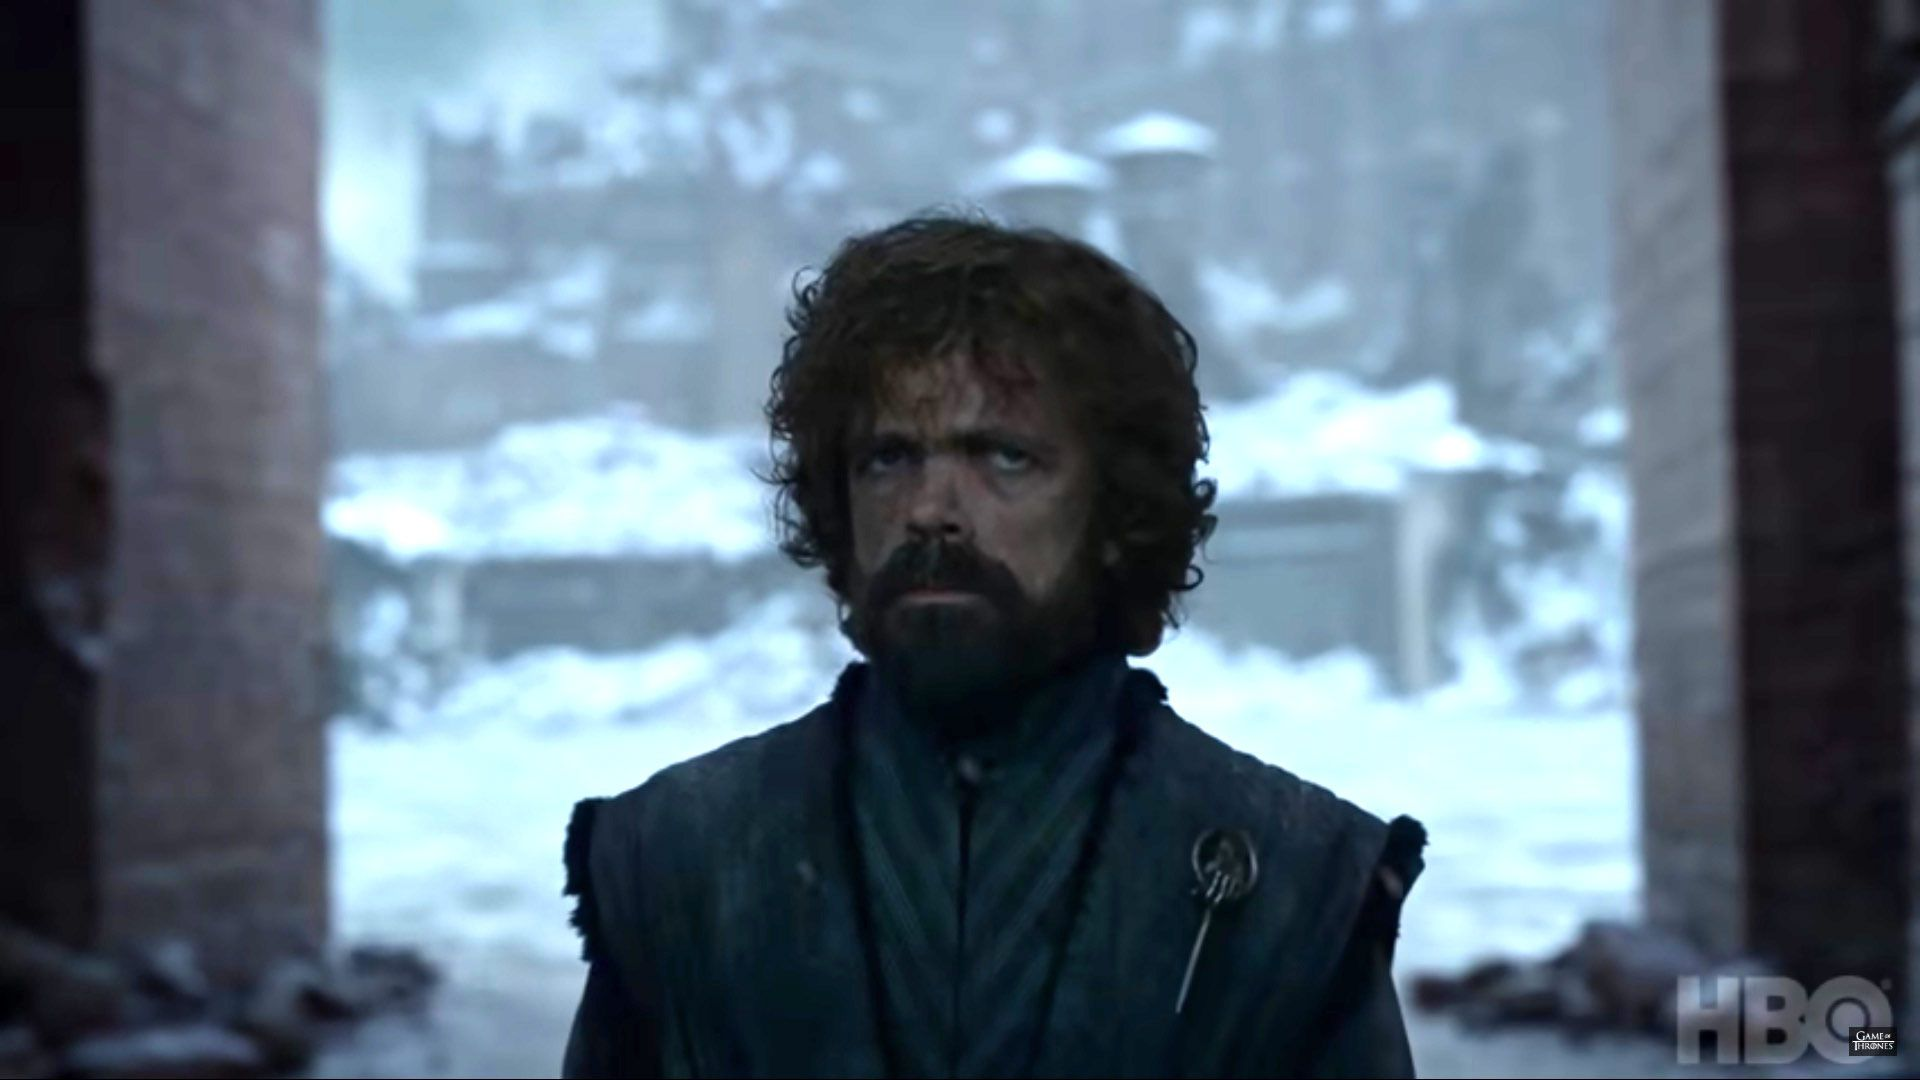 Tyrion looks worried. Credit: HBO